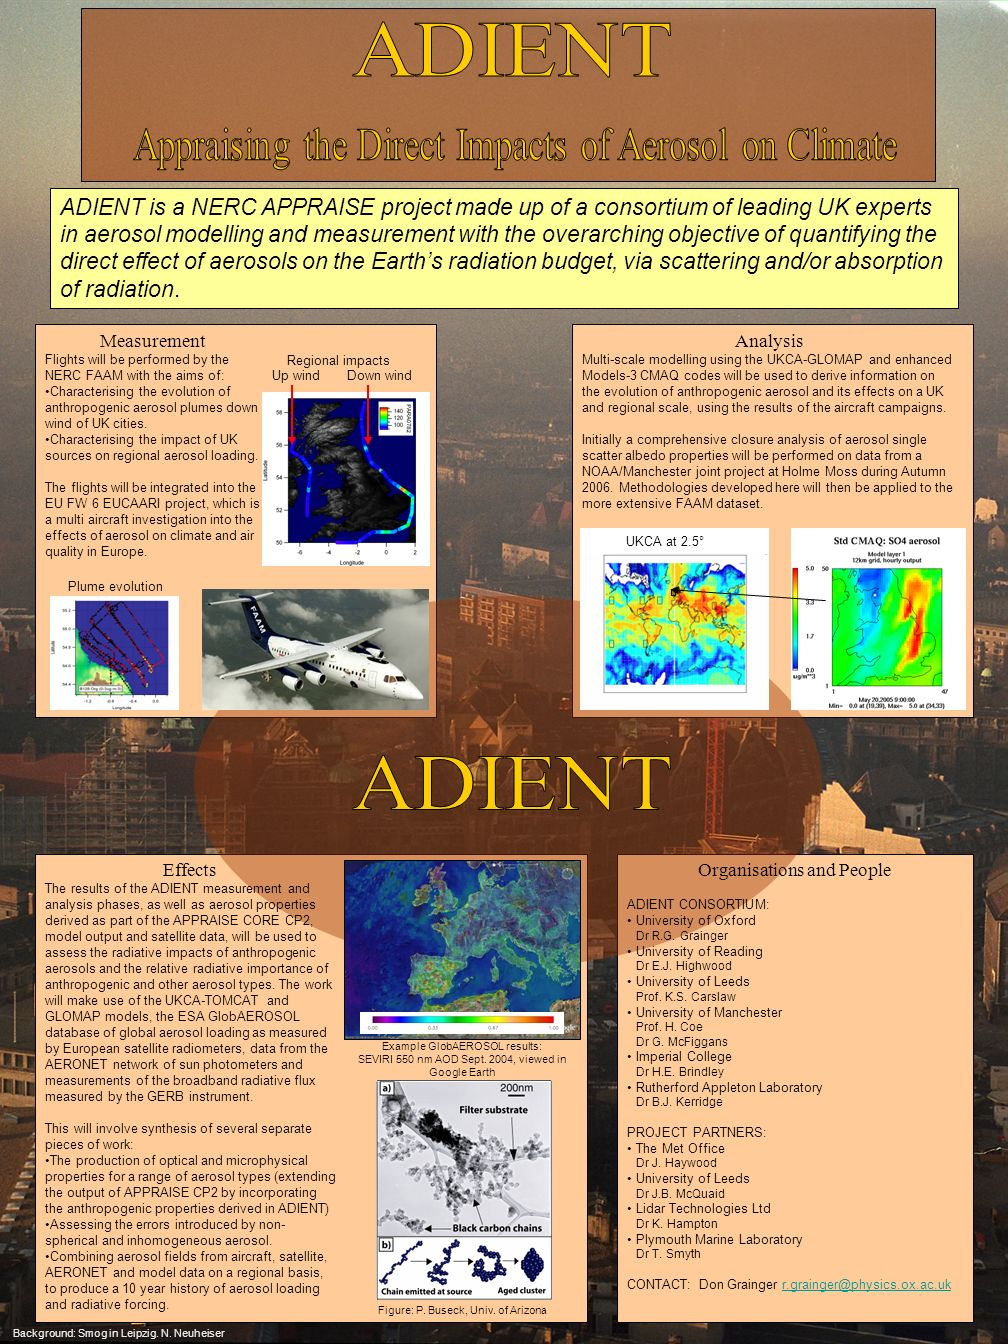 ADIENT is a NERC APPRAISE project made up of a consortium of leading UK experts in aerosol modelling and measurement with the overarching objective of